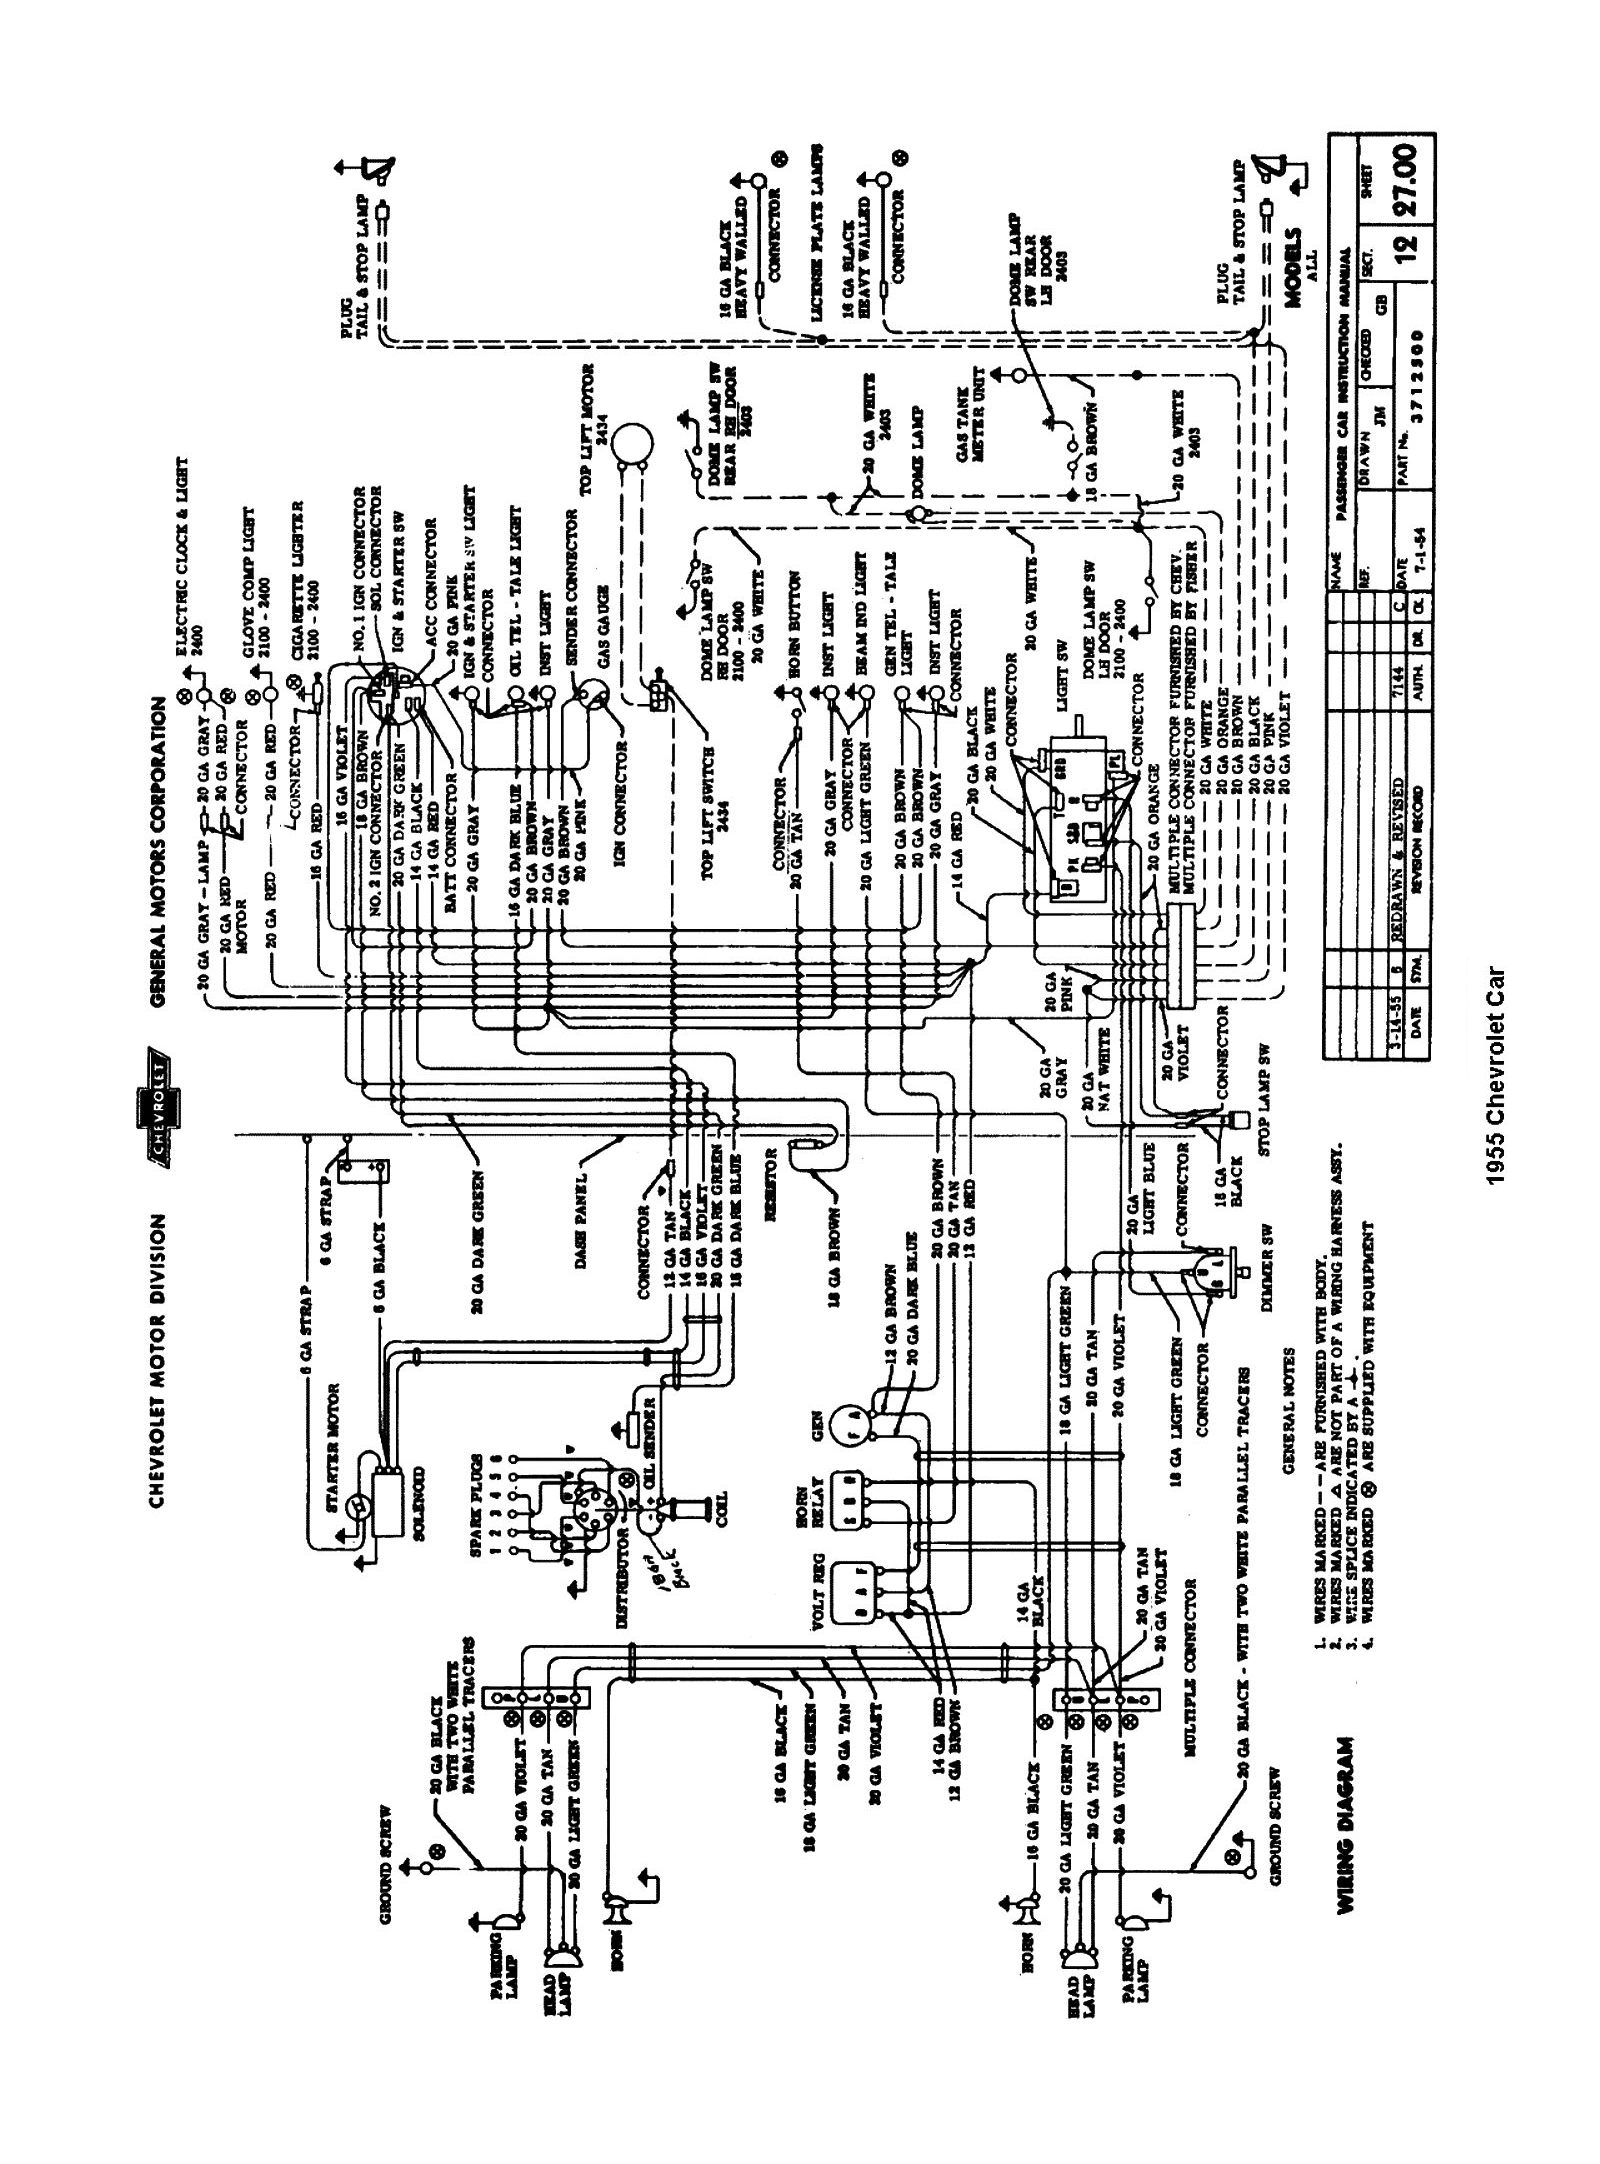 1957 oldsmobile wiring diagram